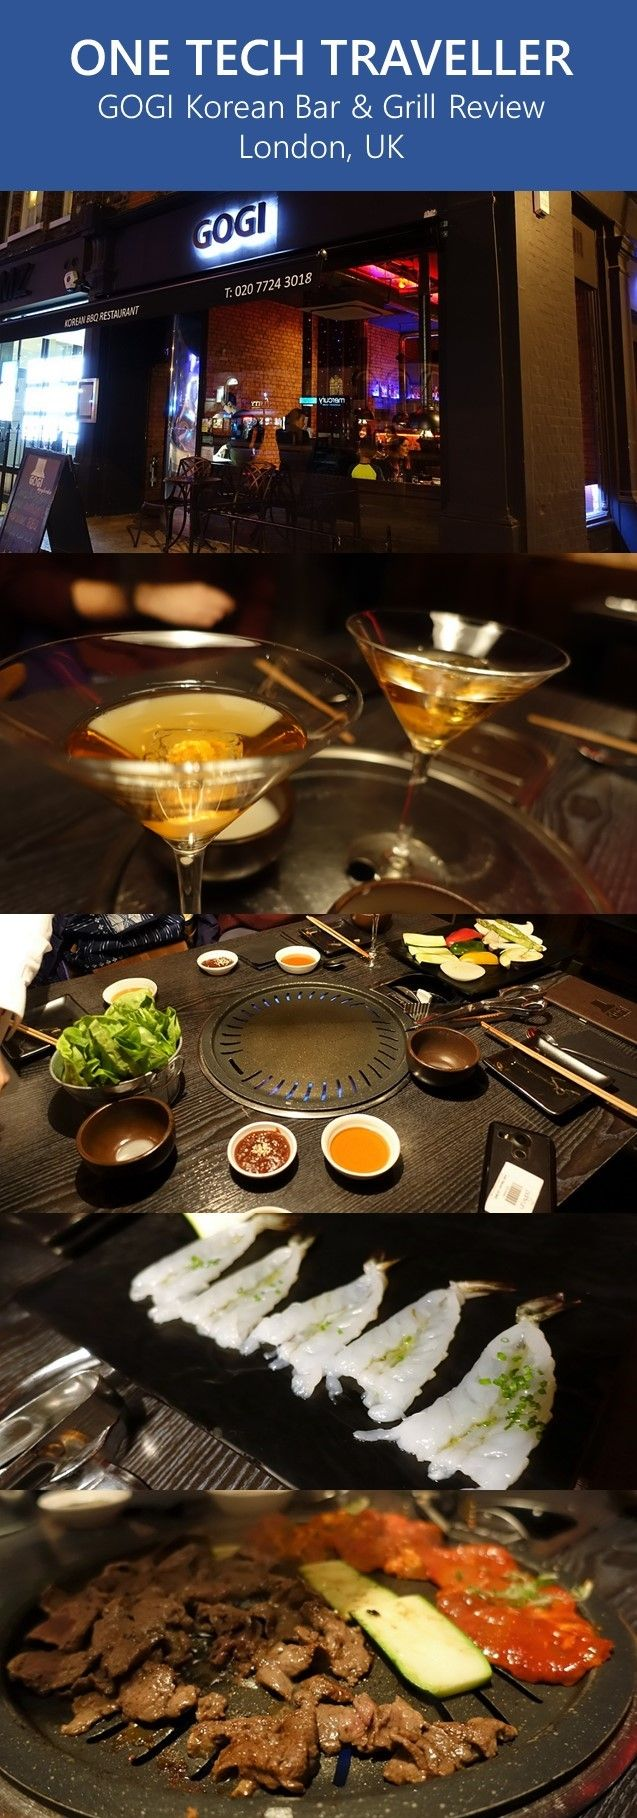 """We had a great time overall at GOGI Korean restaurant London. The Korean BBQ was a nice experience, the quality of the meat and seafood were very good and the Makgeolli (막걸리) drinks reminded me of being in South Korea""   Read my full review: http://onetechtraveller.com/gogi-korean-bar-grill-london/  Follow One Tech Traveller Instagram www.instagram.com/onetechtraveller Facebook www.instagram.com/onetechtraveller"